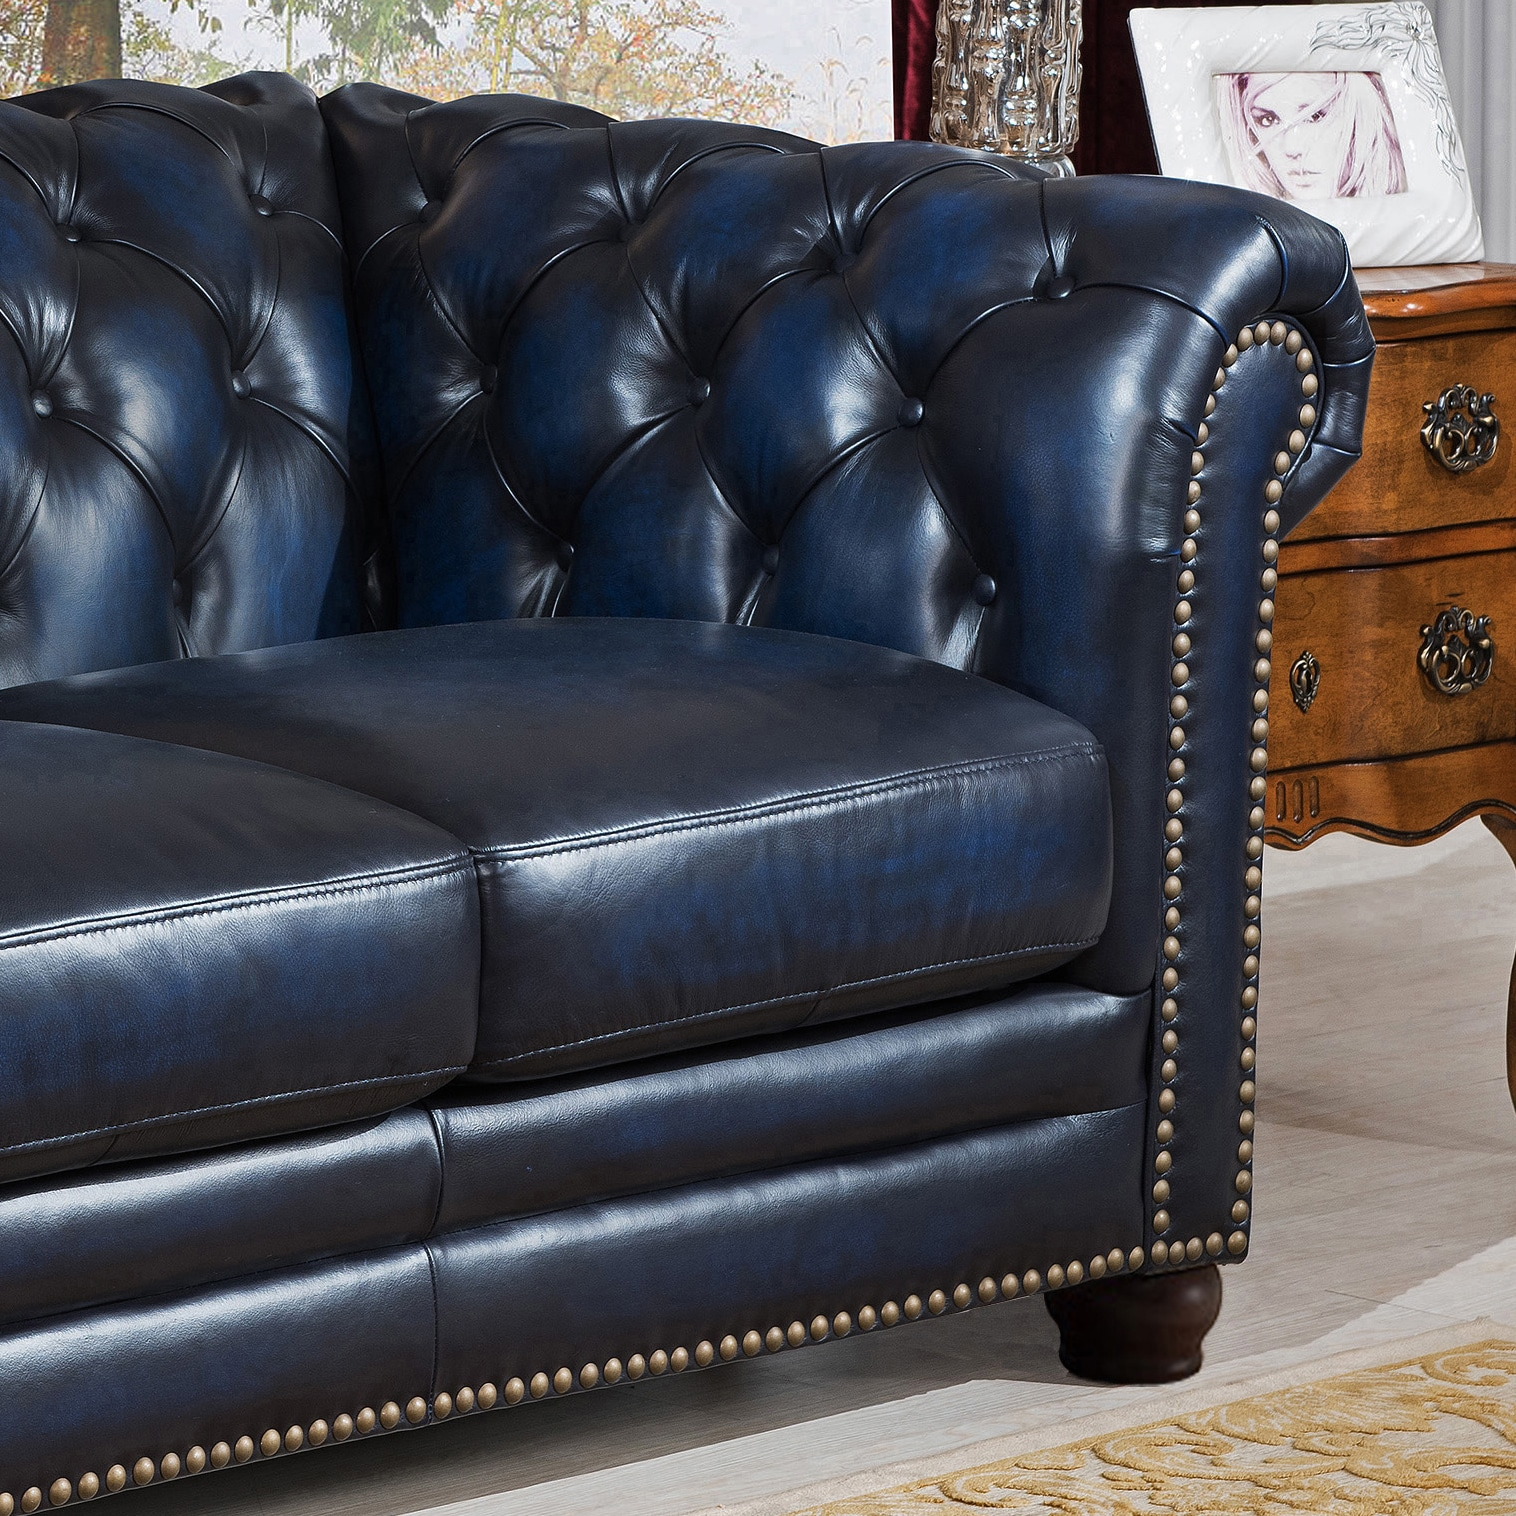 Pleasing Nebraska Genuine Hand Rubbed Blue Leather Chesterfield Sofa And Chair Set Beutiful Home Inspiration Truamahrainfo